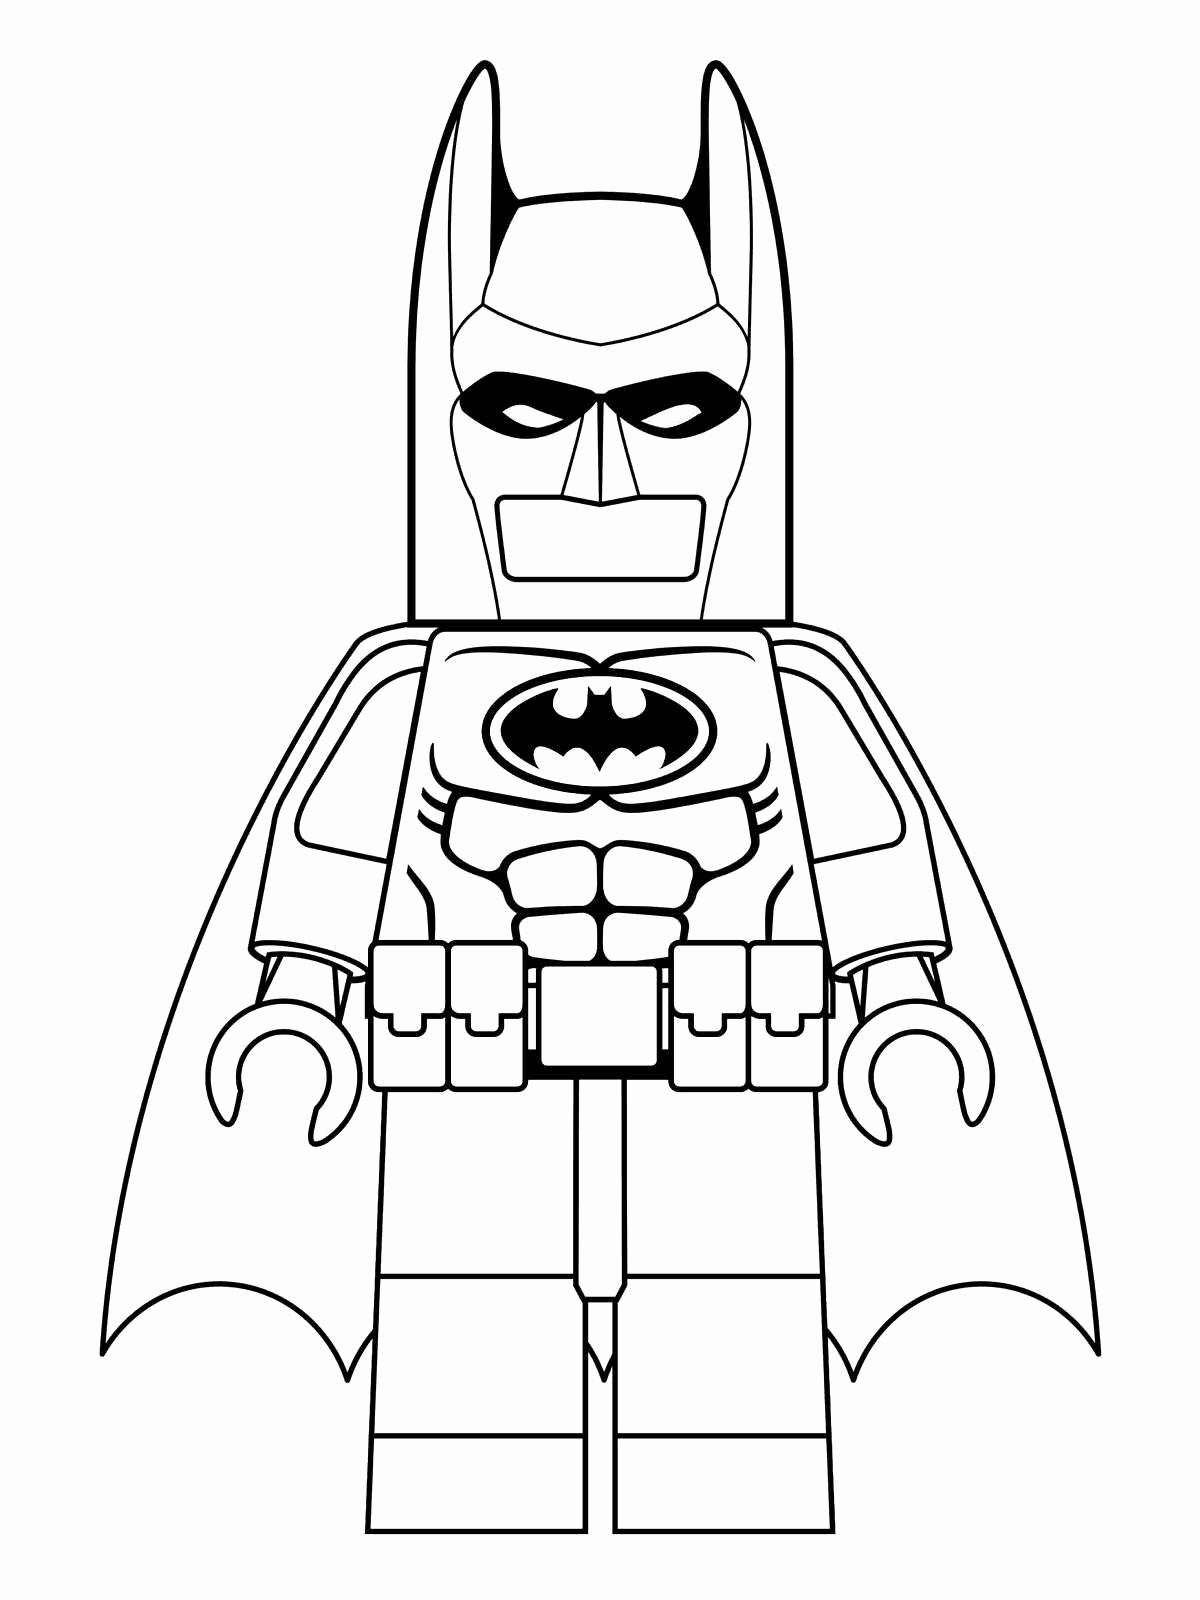 Free Printable Coloring Pages For Kids Lego Lego Movie Coloring Pages Lego Coloring Pages Superhero Coloring